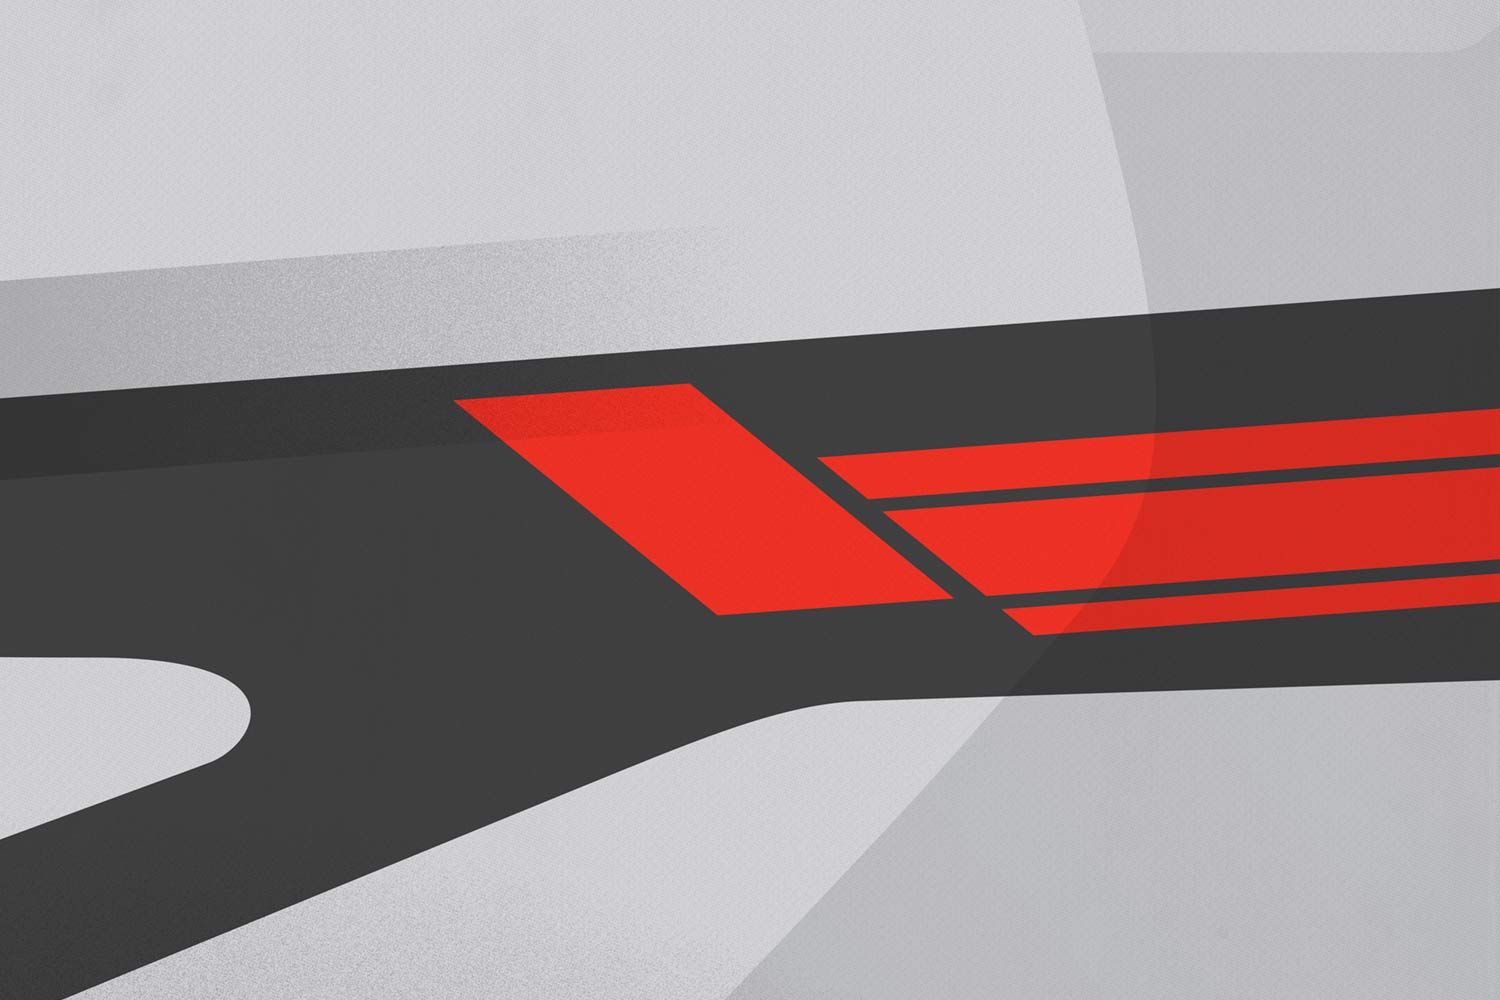 The abstract series. BMC. veloposters.com